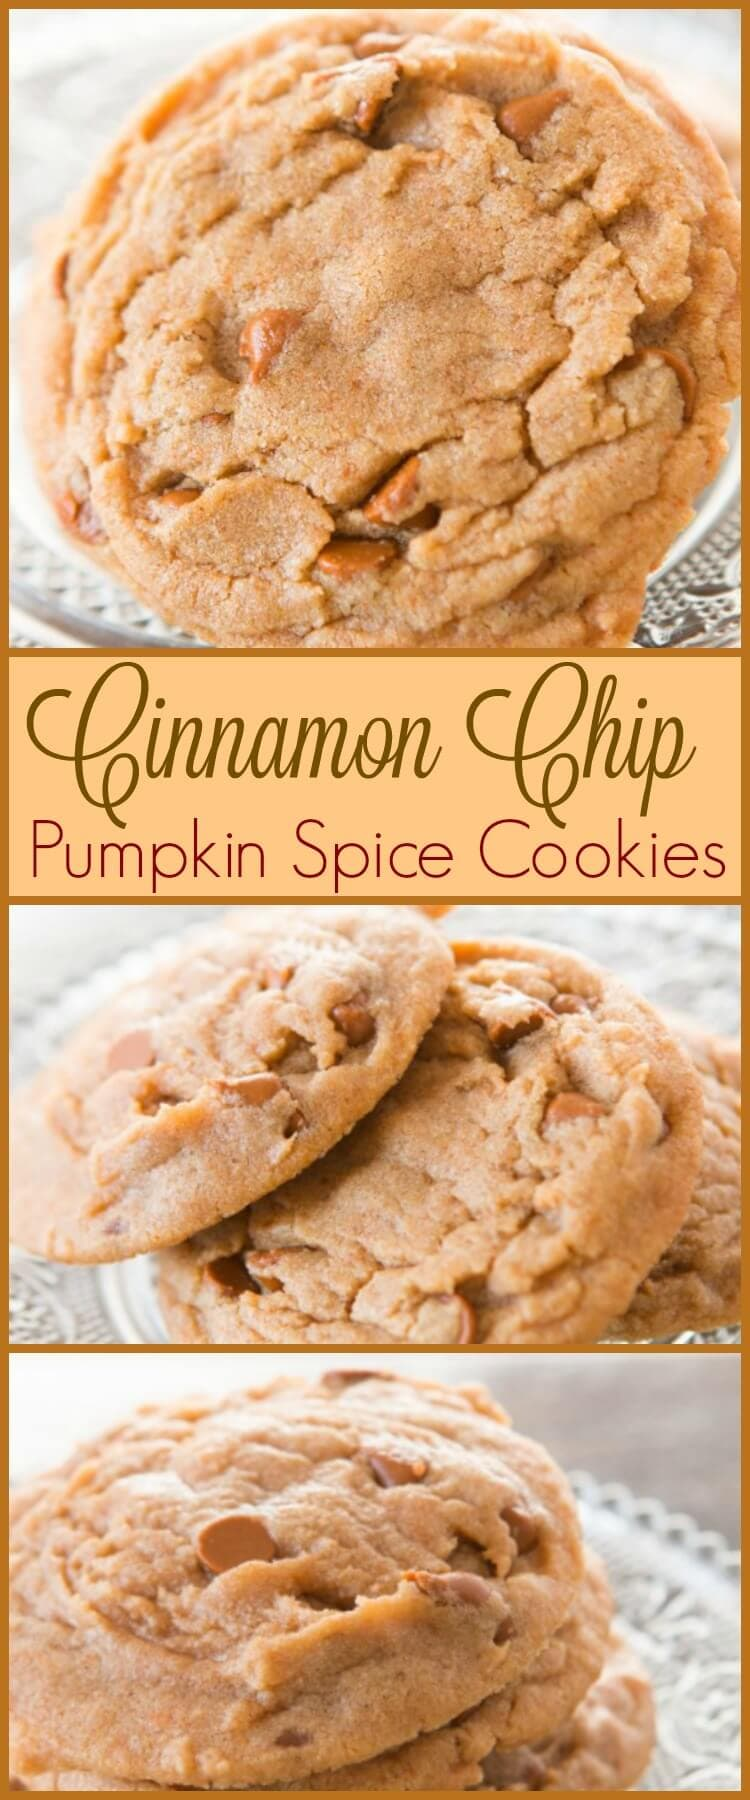 Our kids are in love with these cinnamon chip pumpkin spice cookies fresh from the oven and your kids will too once they try them! ohsweetbasil.com